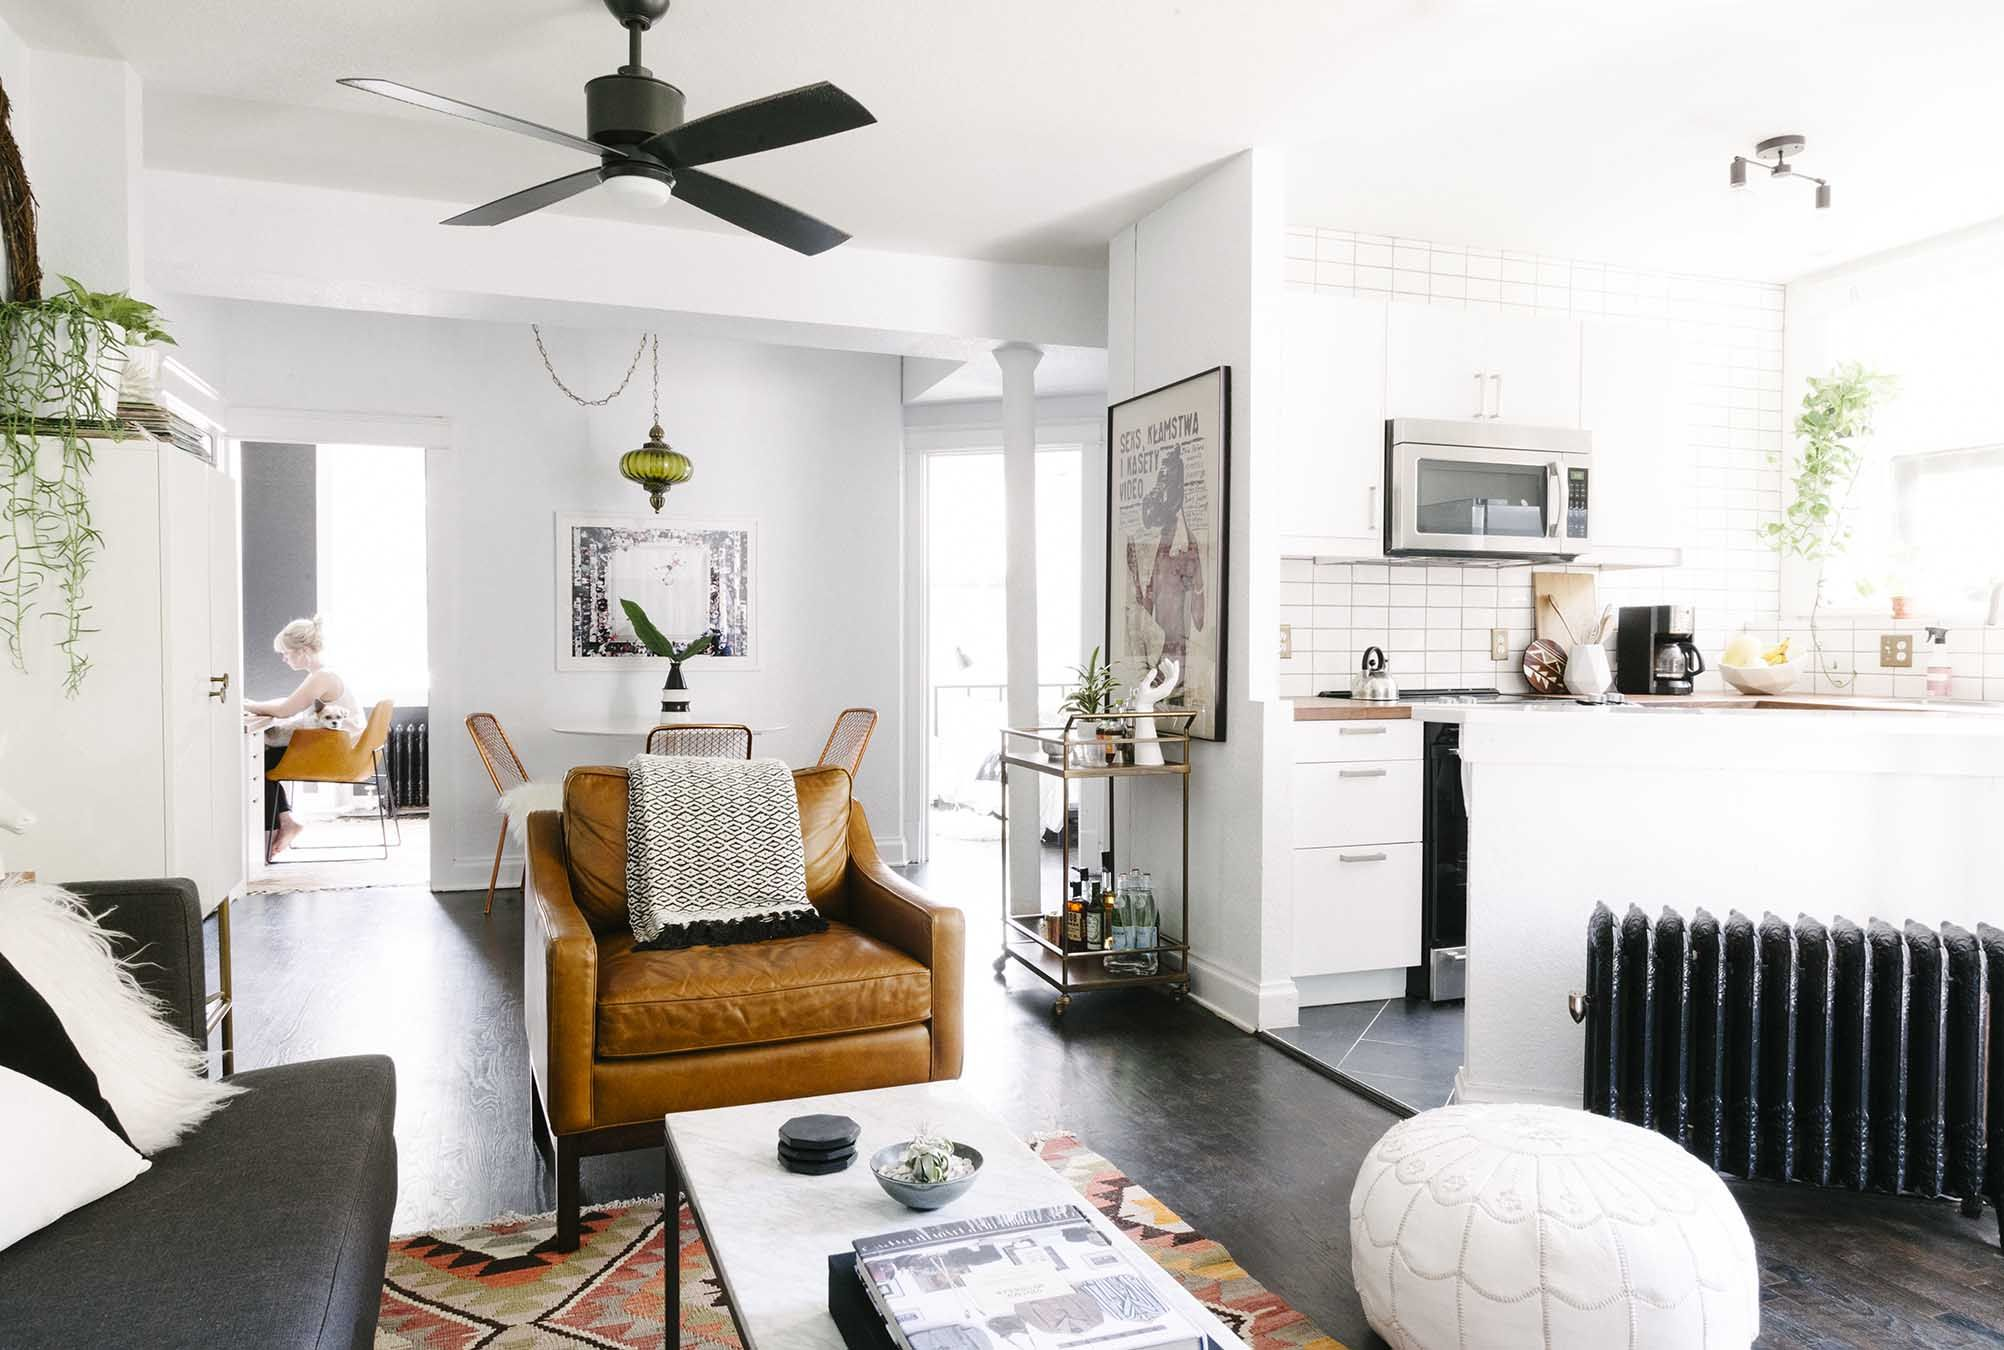 Amy\'s 600 Square Feet Of Eclectic And Modern Charm | Small space ...